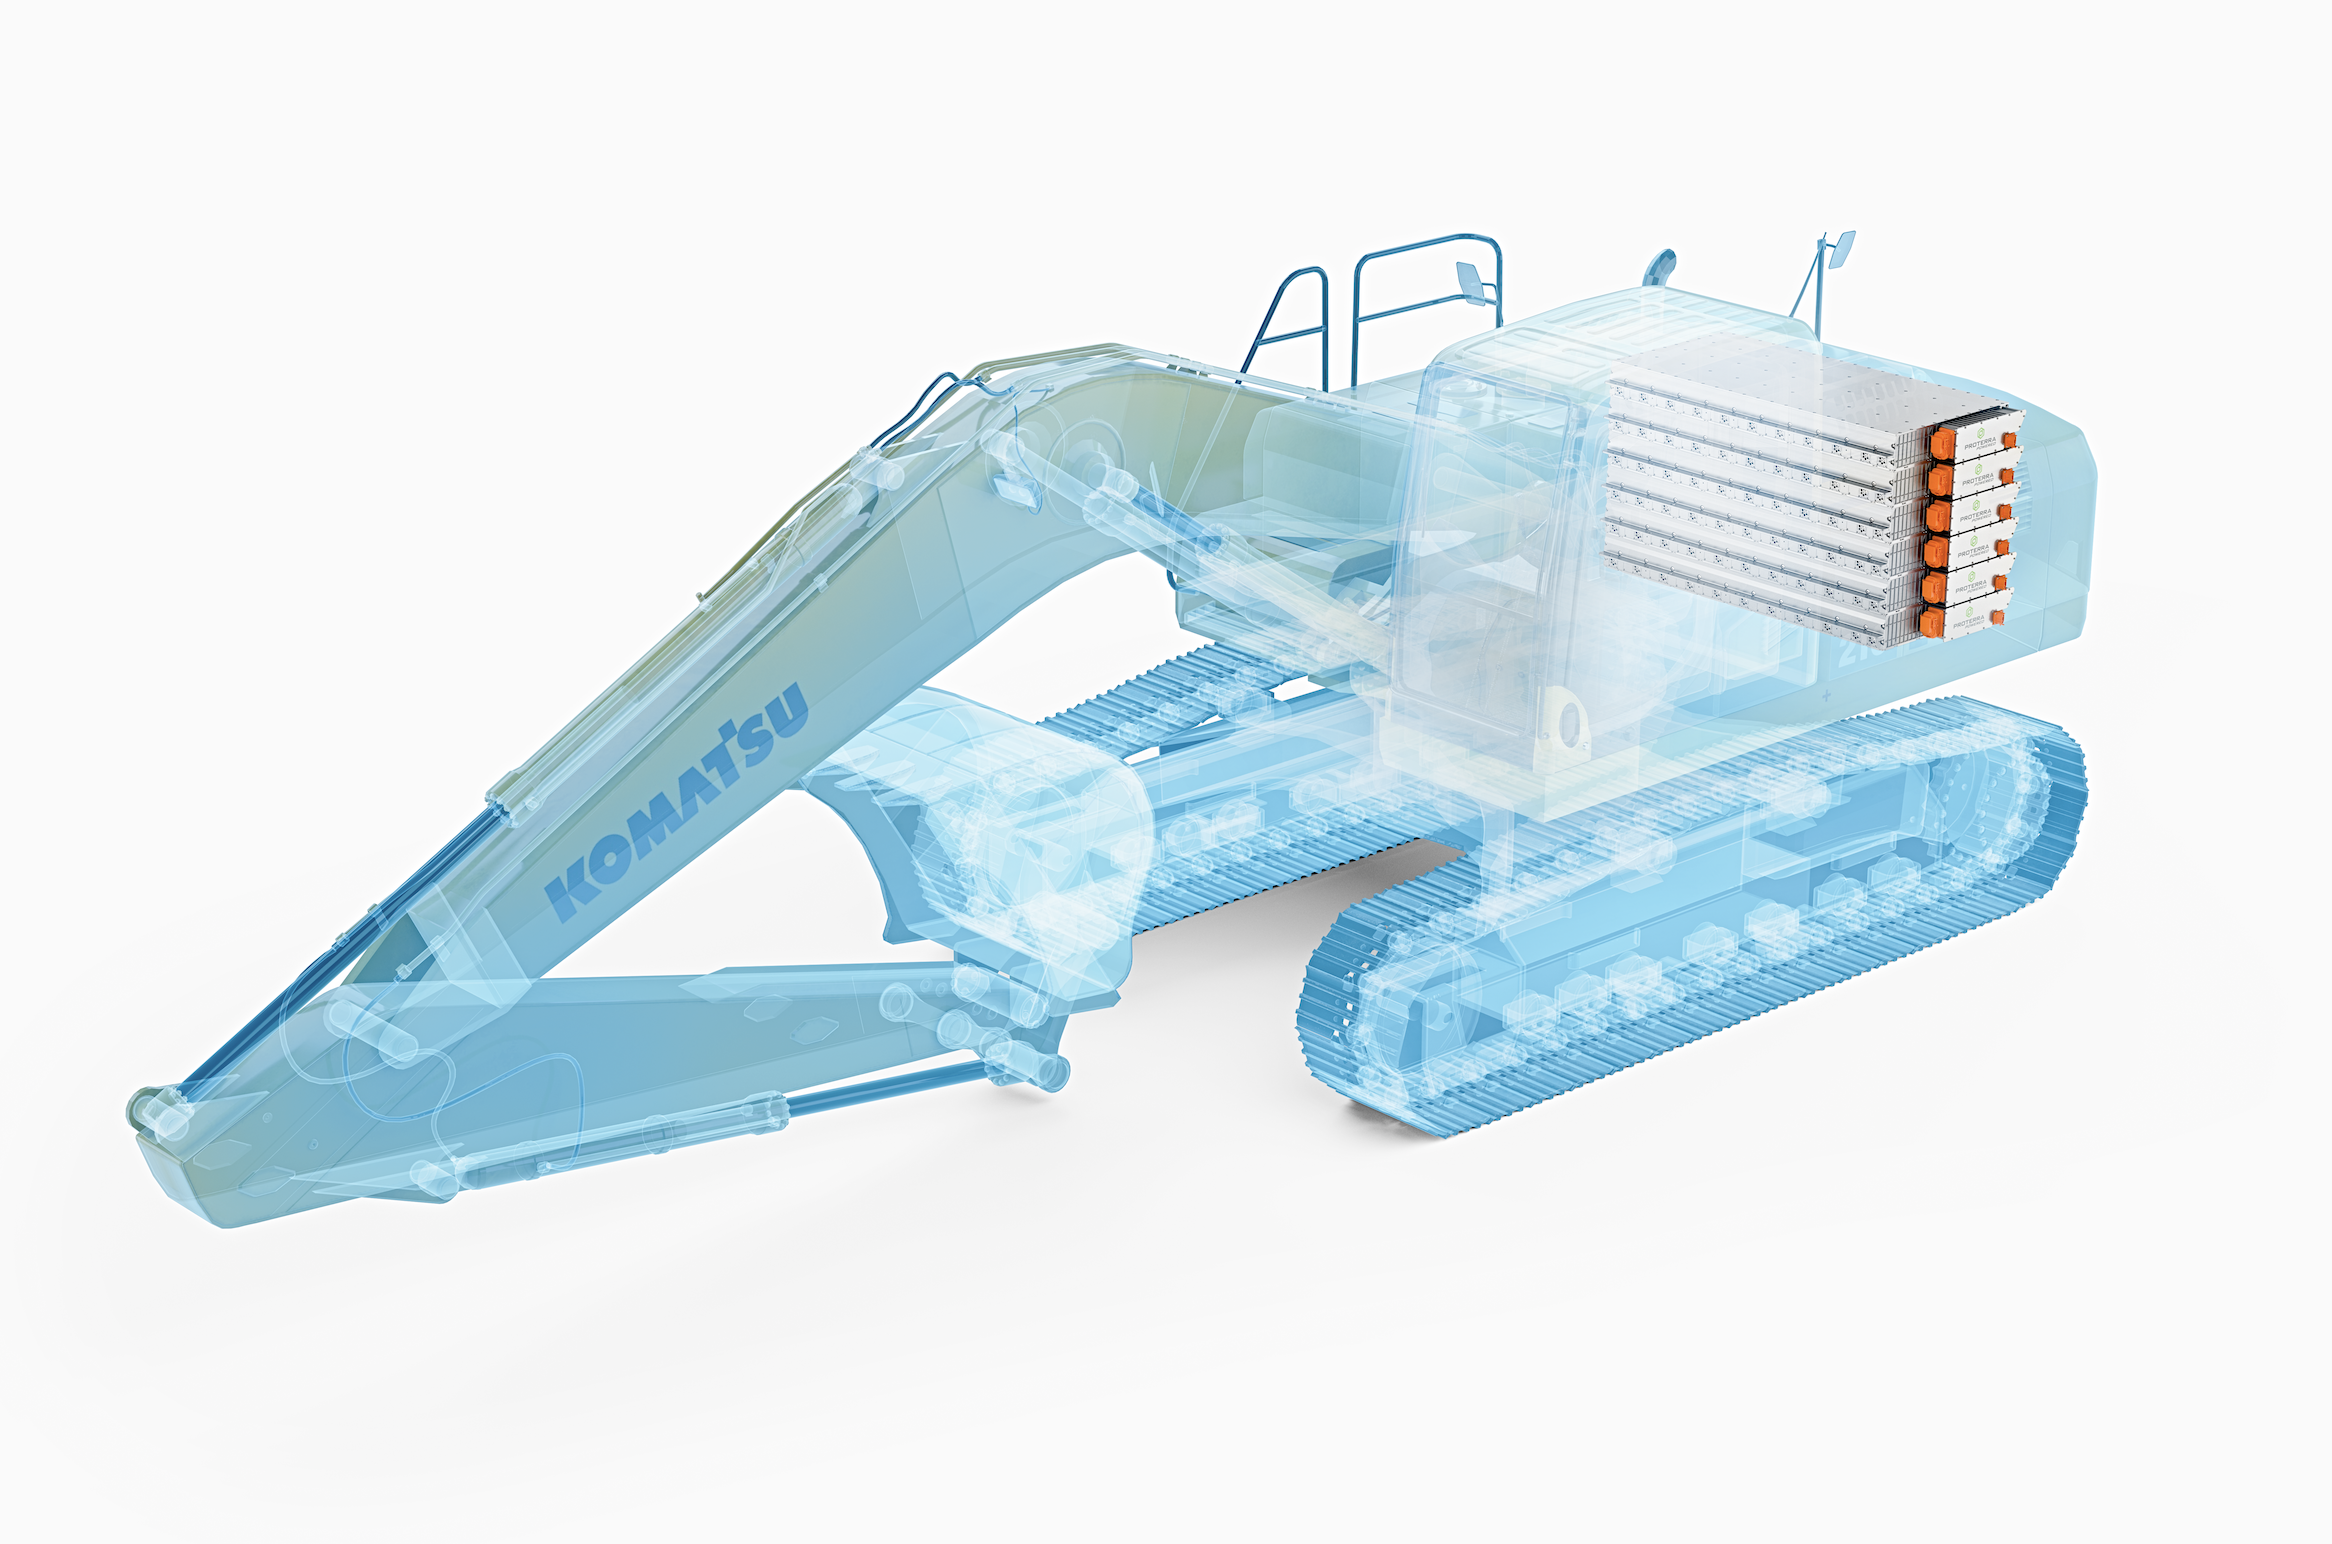 Joint PoC Verification Tests to Start for Electrification of Small and Medium-sized Hydraulic Excavators:  Announcing Collaboration with Proterra of the United States